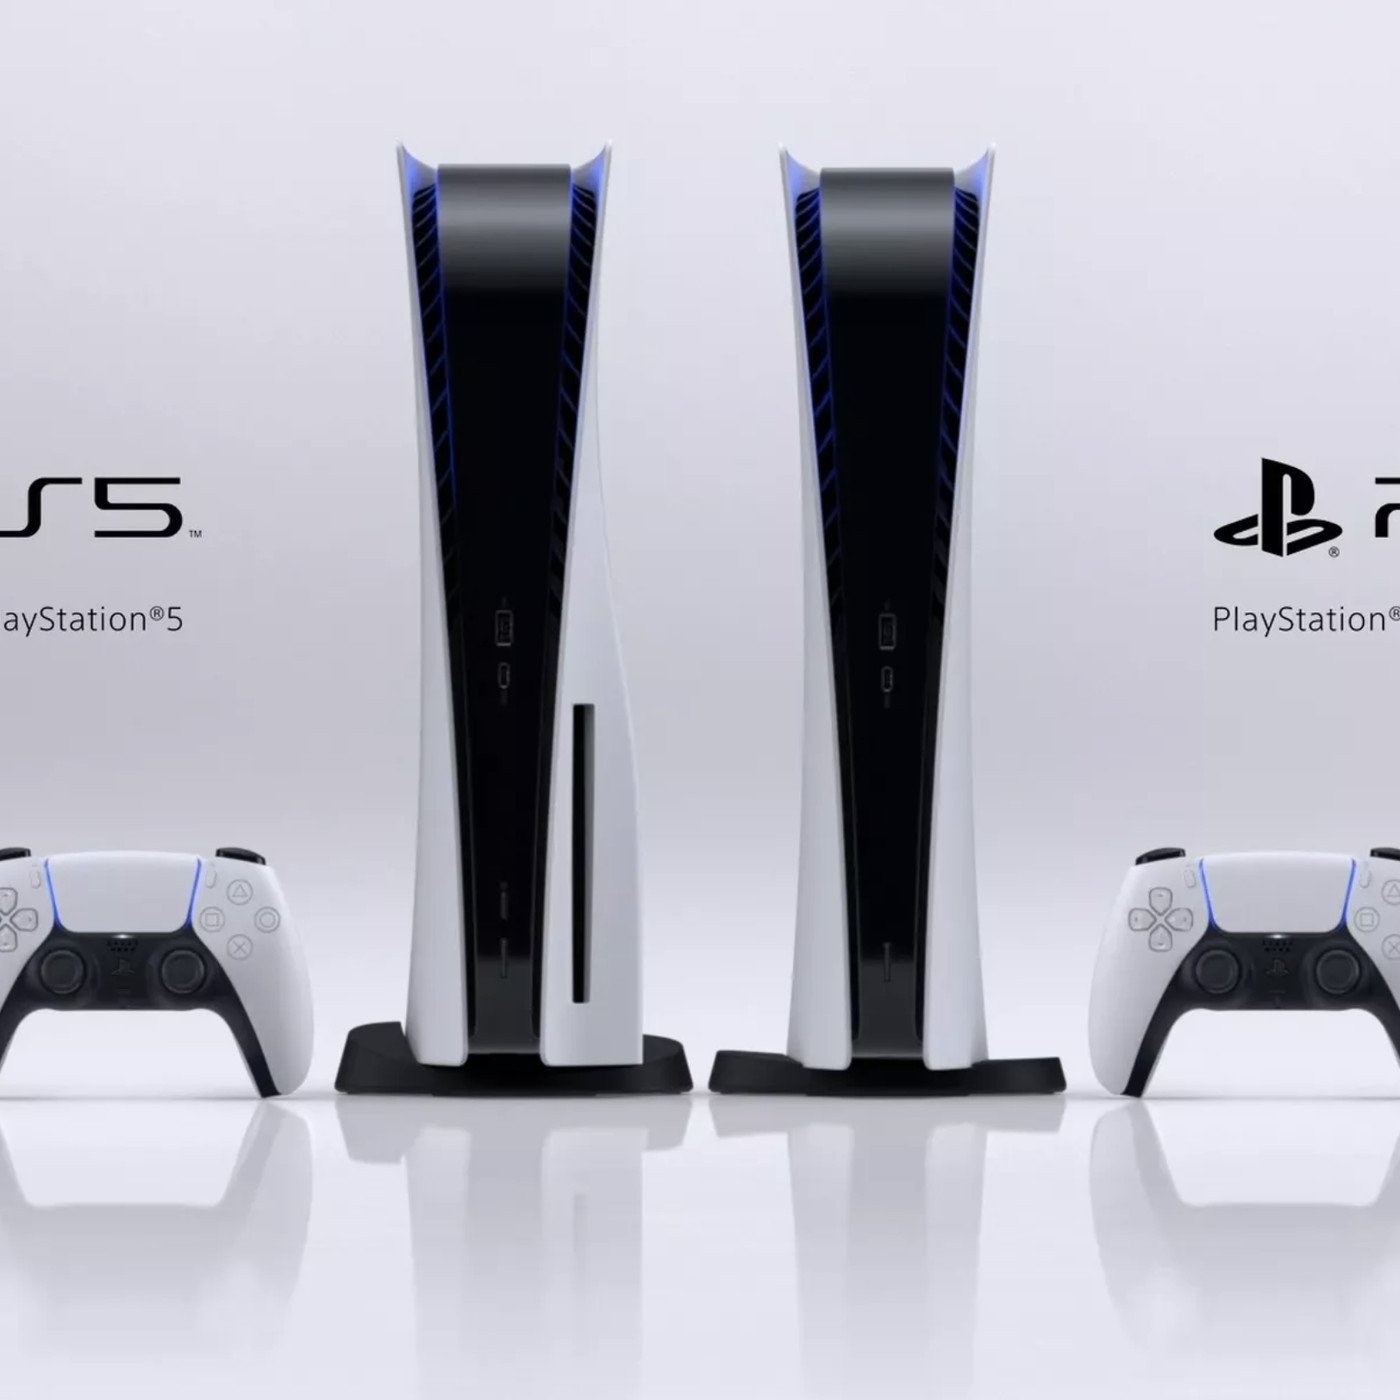 invite-only PlayStation 5 preorders ...